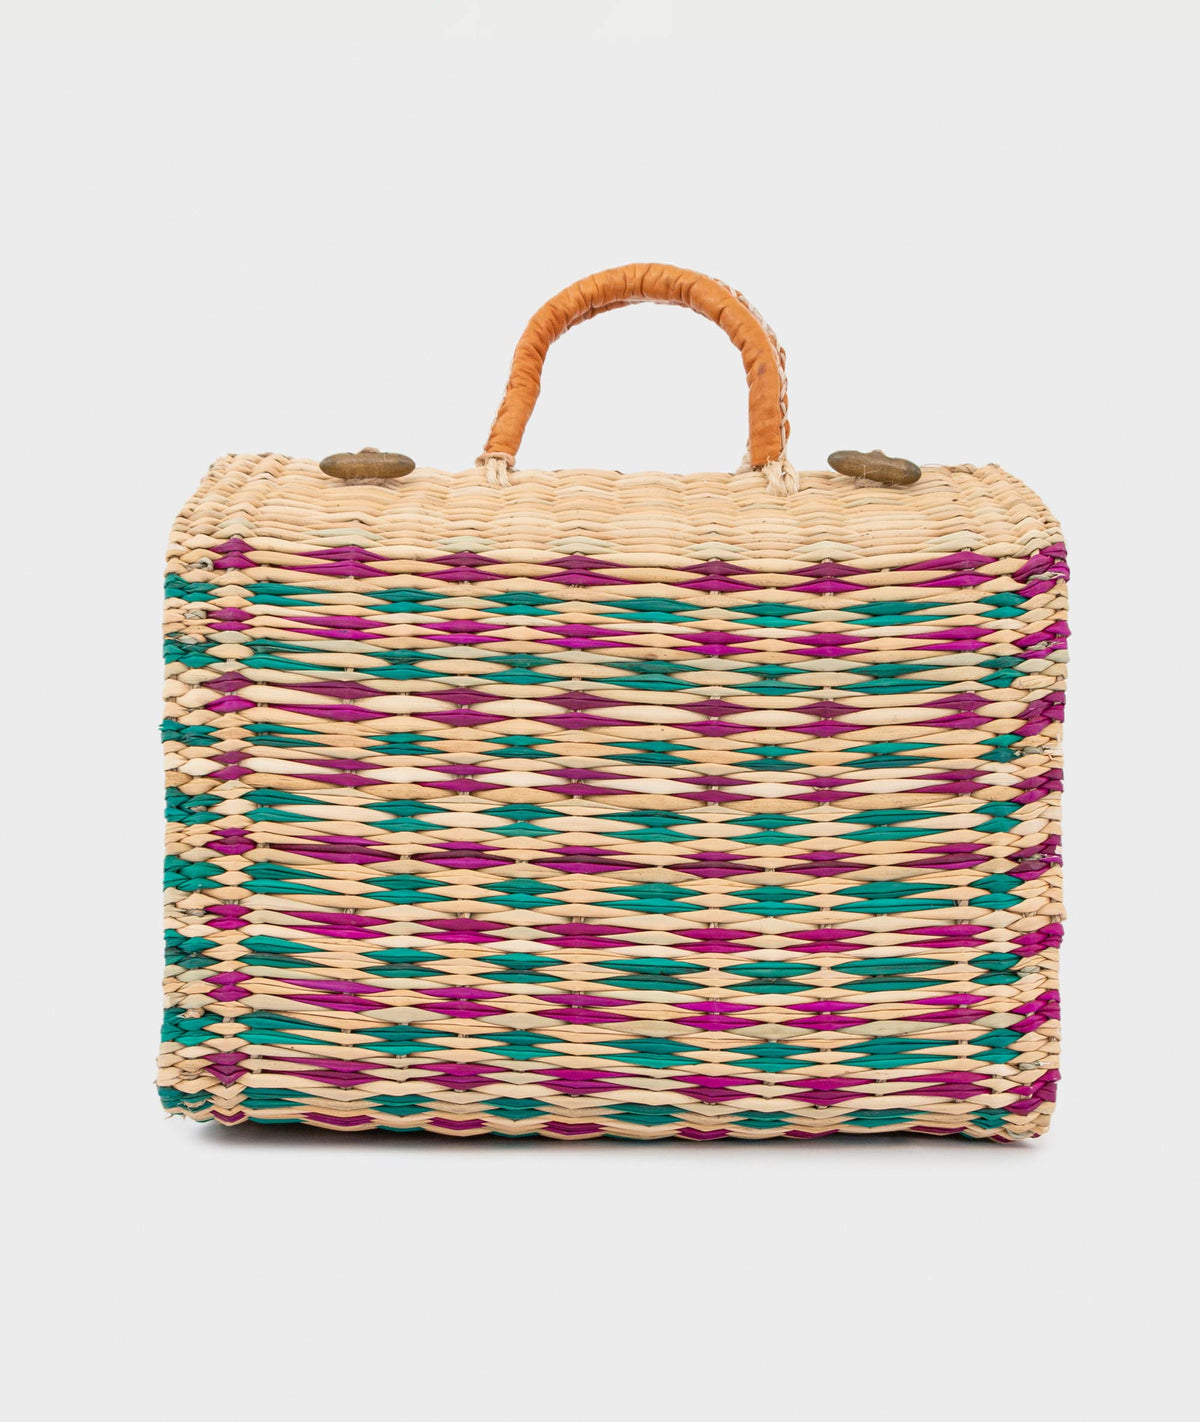 Retro Beach Bag